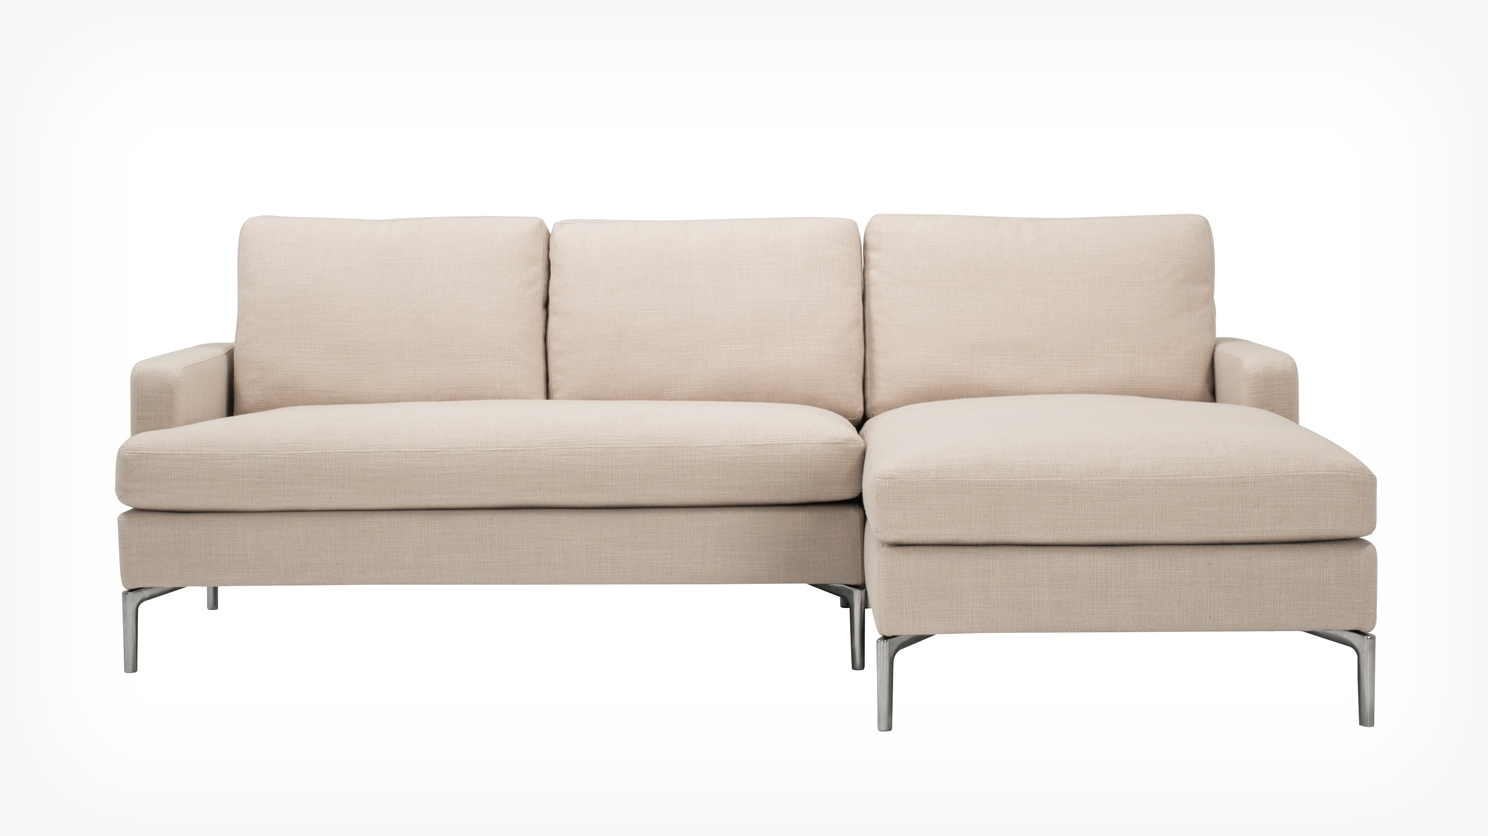 Fabric Sectional Sofas With Chaise For Latest Eq (View 7 of 15)